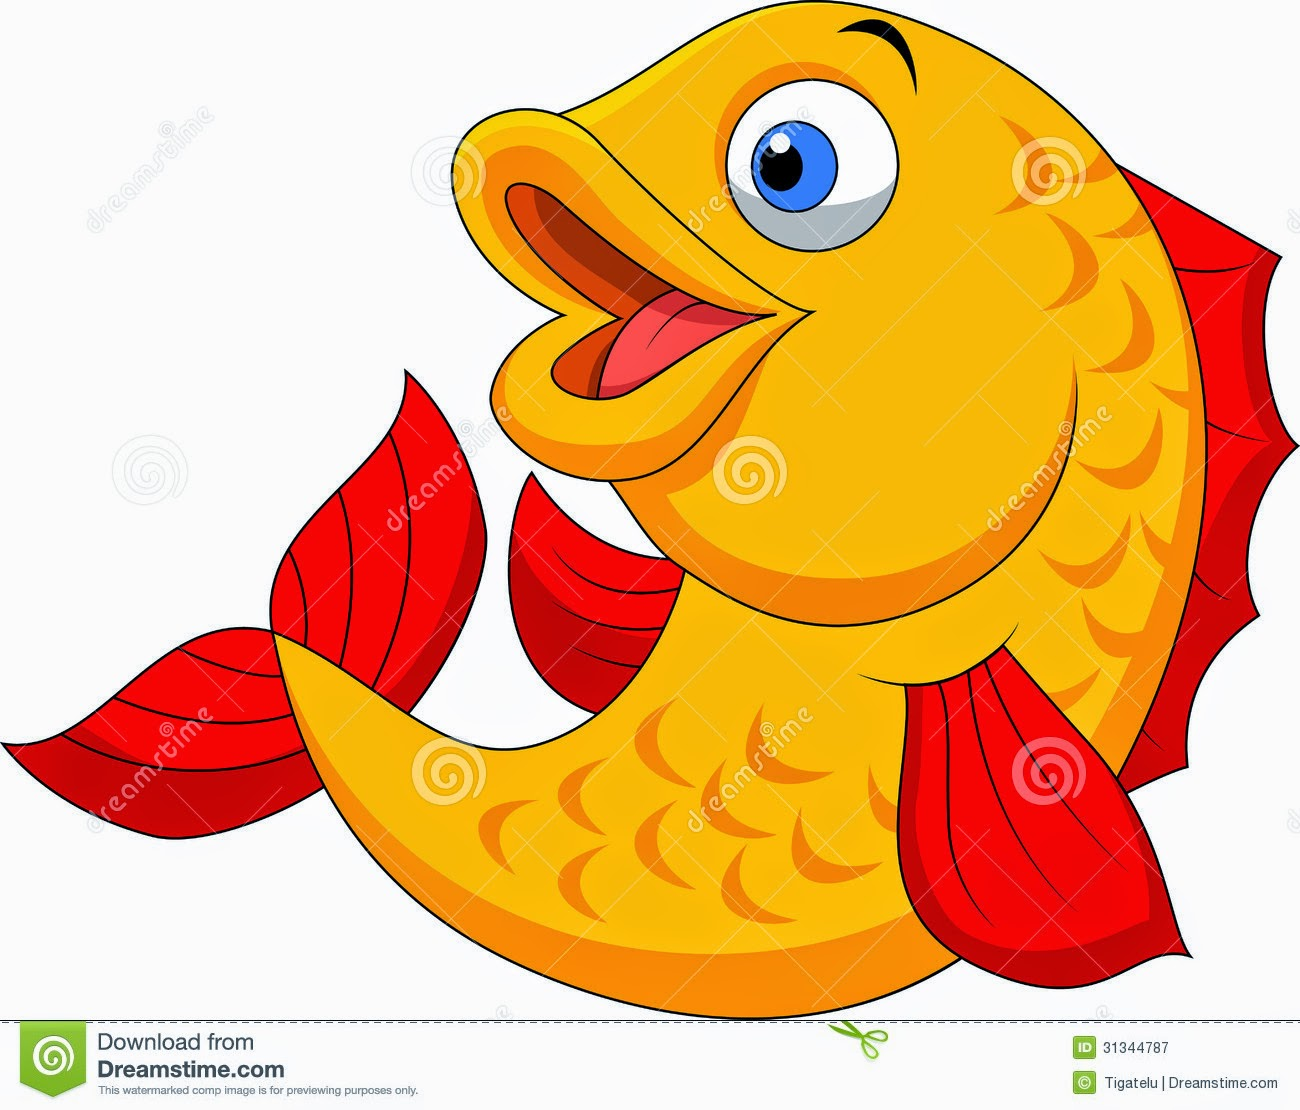 Fish cartoon images